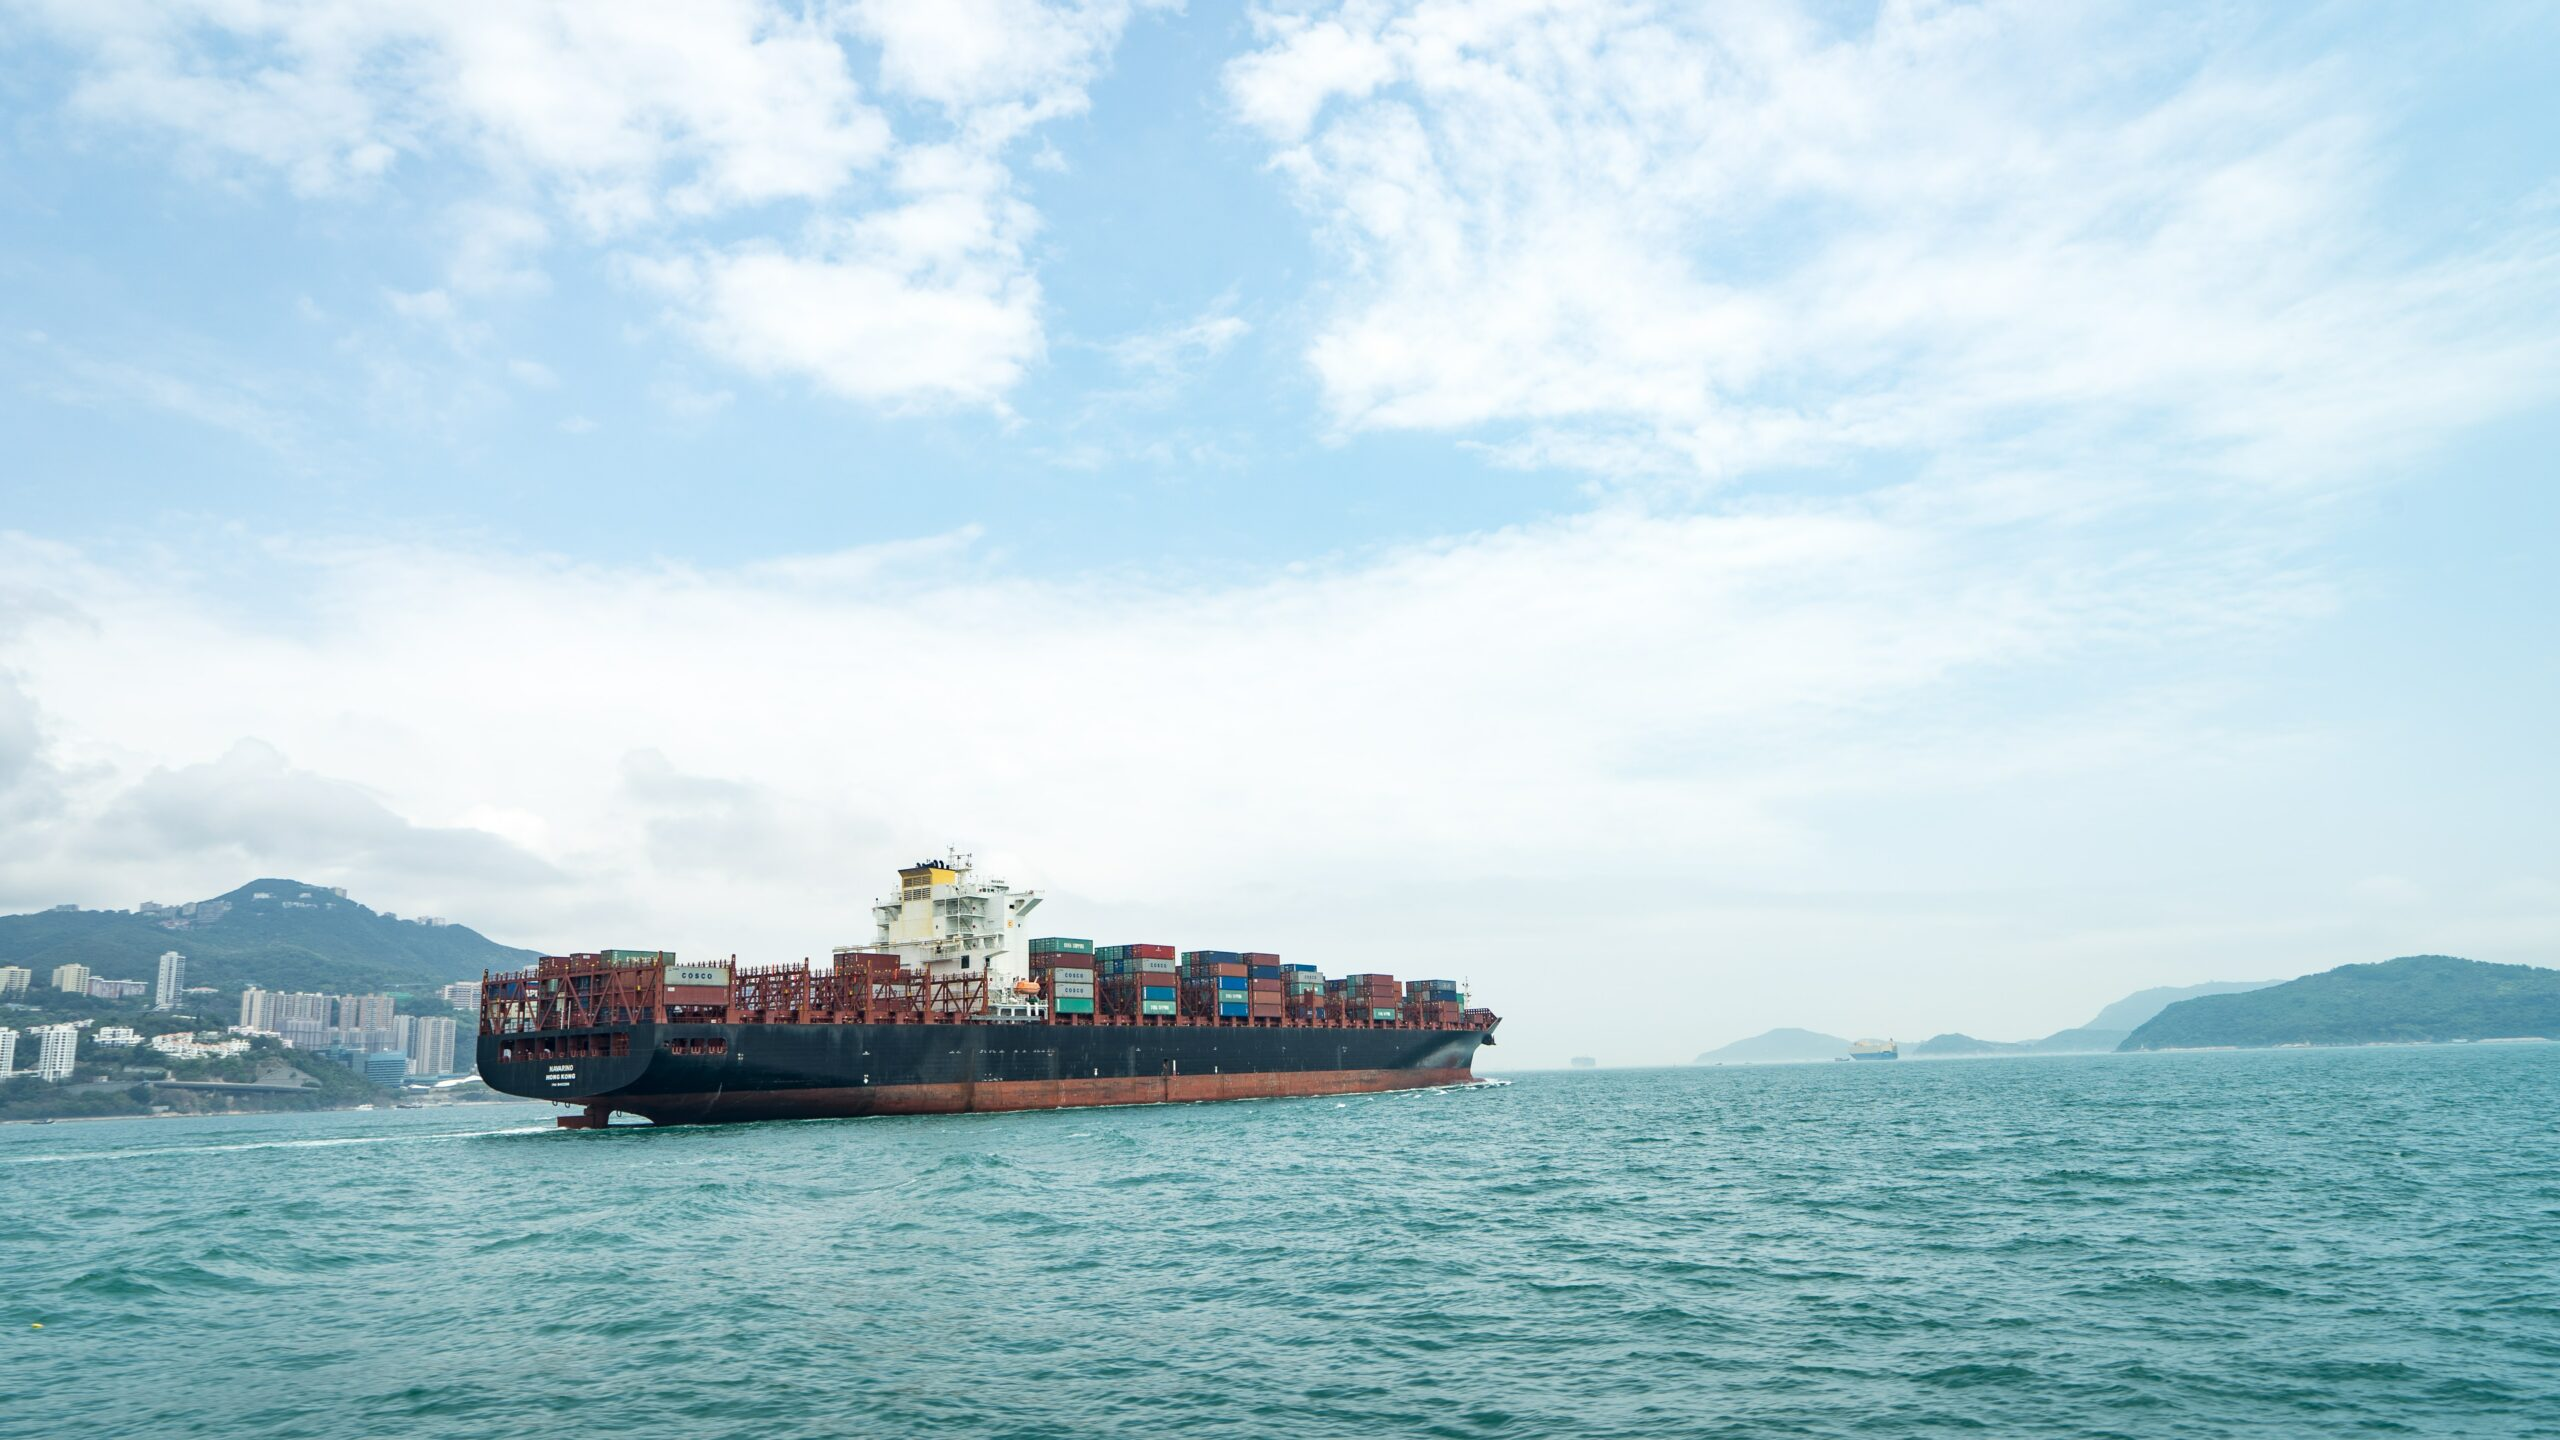 Containers on ship: Third party money laundering